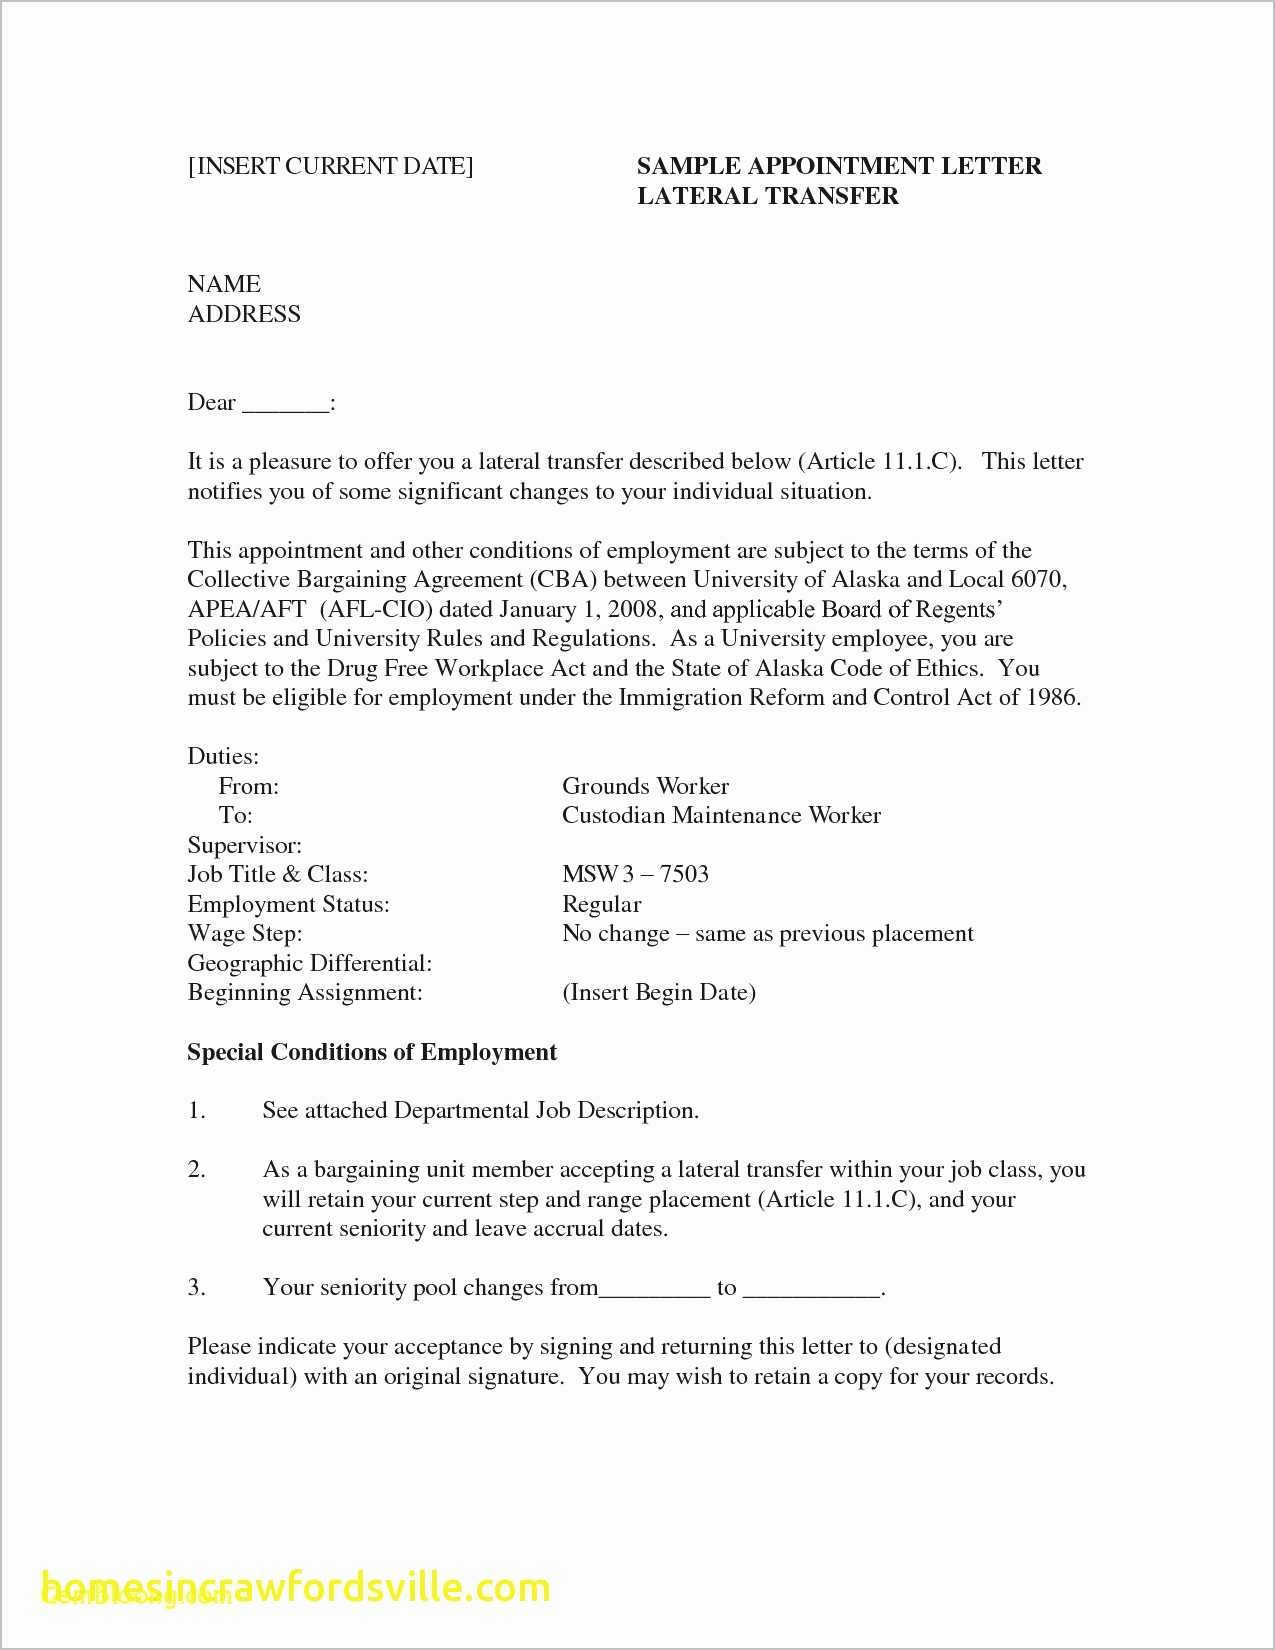 How To Spell Resume How To Spell Resume Best Of How Do You Spell Resume A Cover Letter Of How To Spell Resume how to spell resume|wikiresume.com